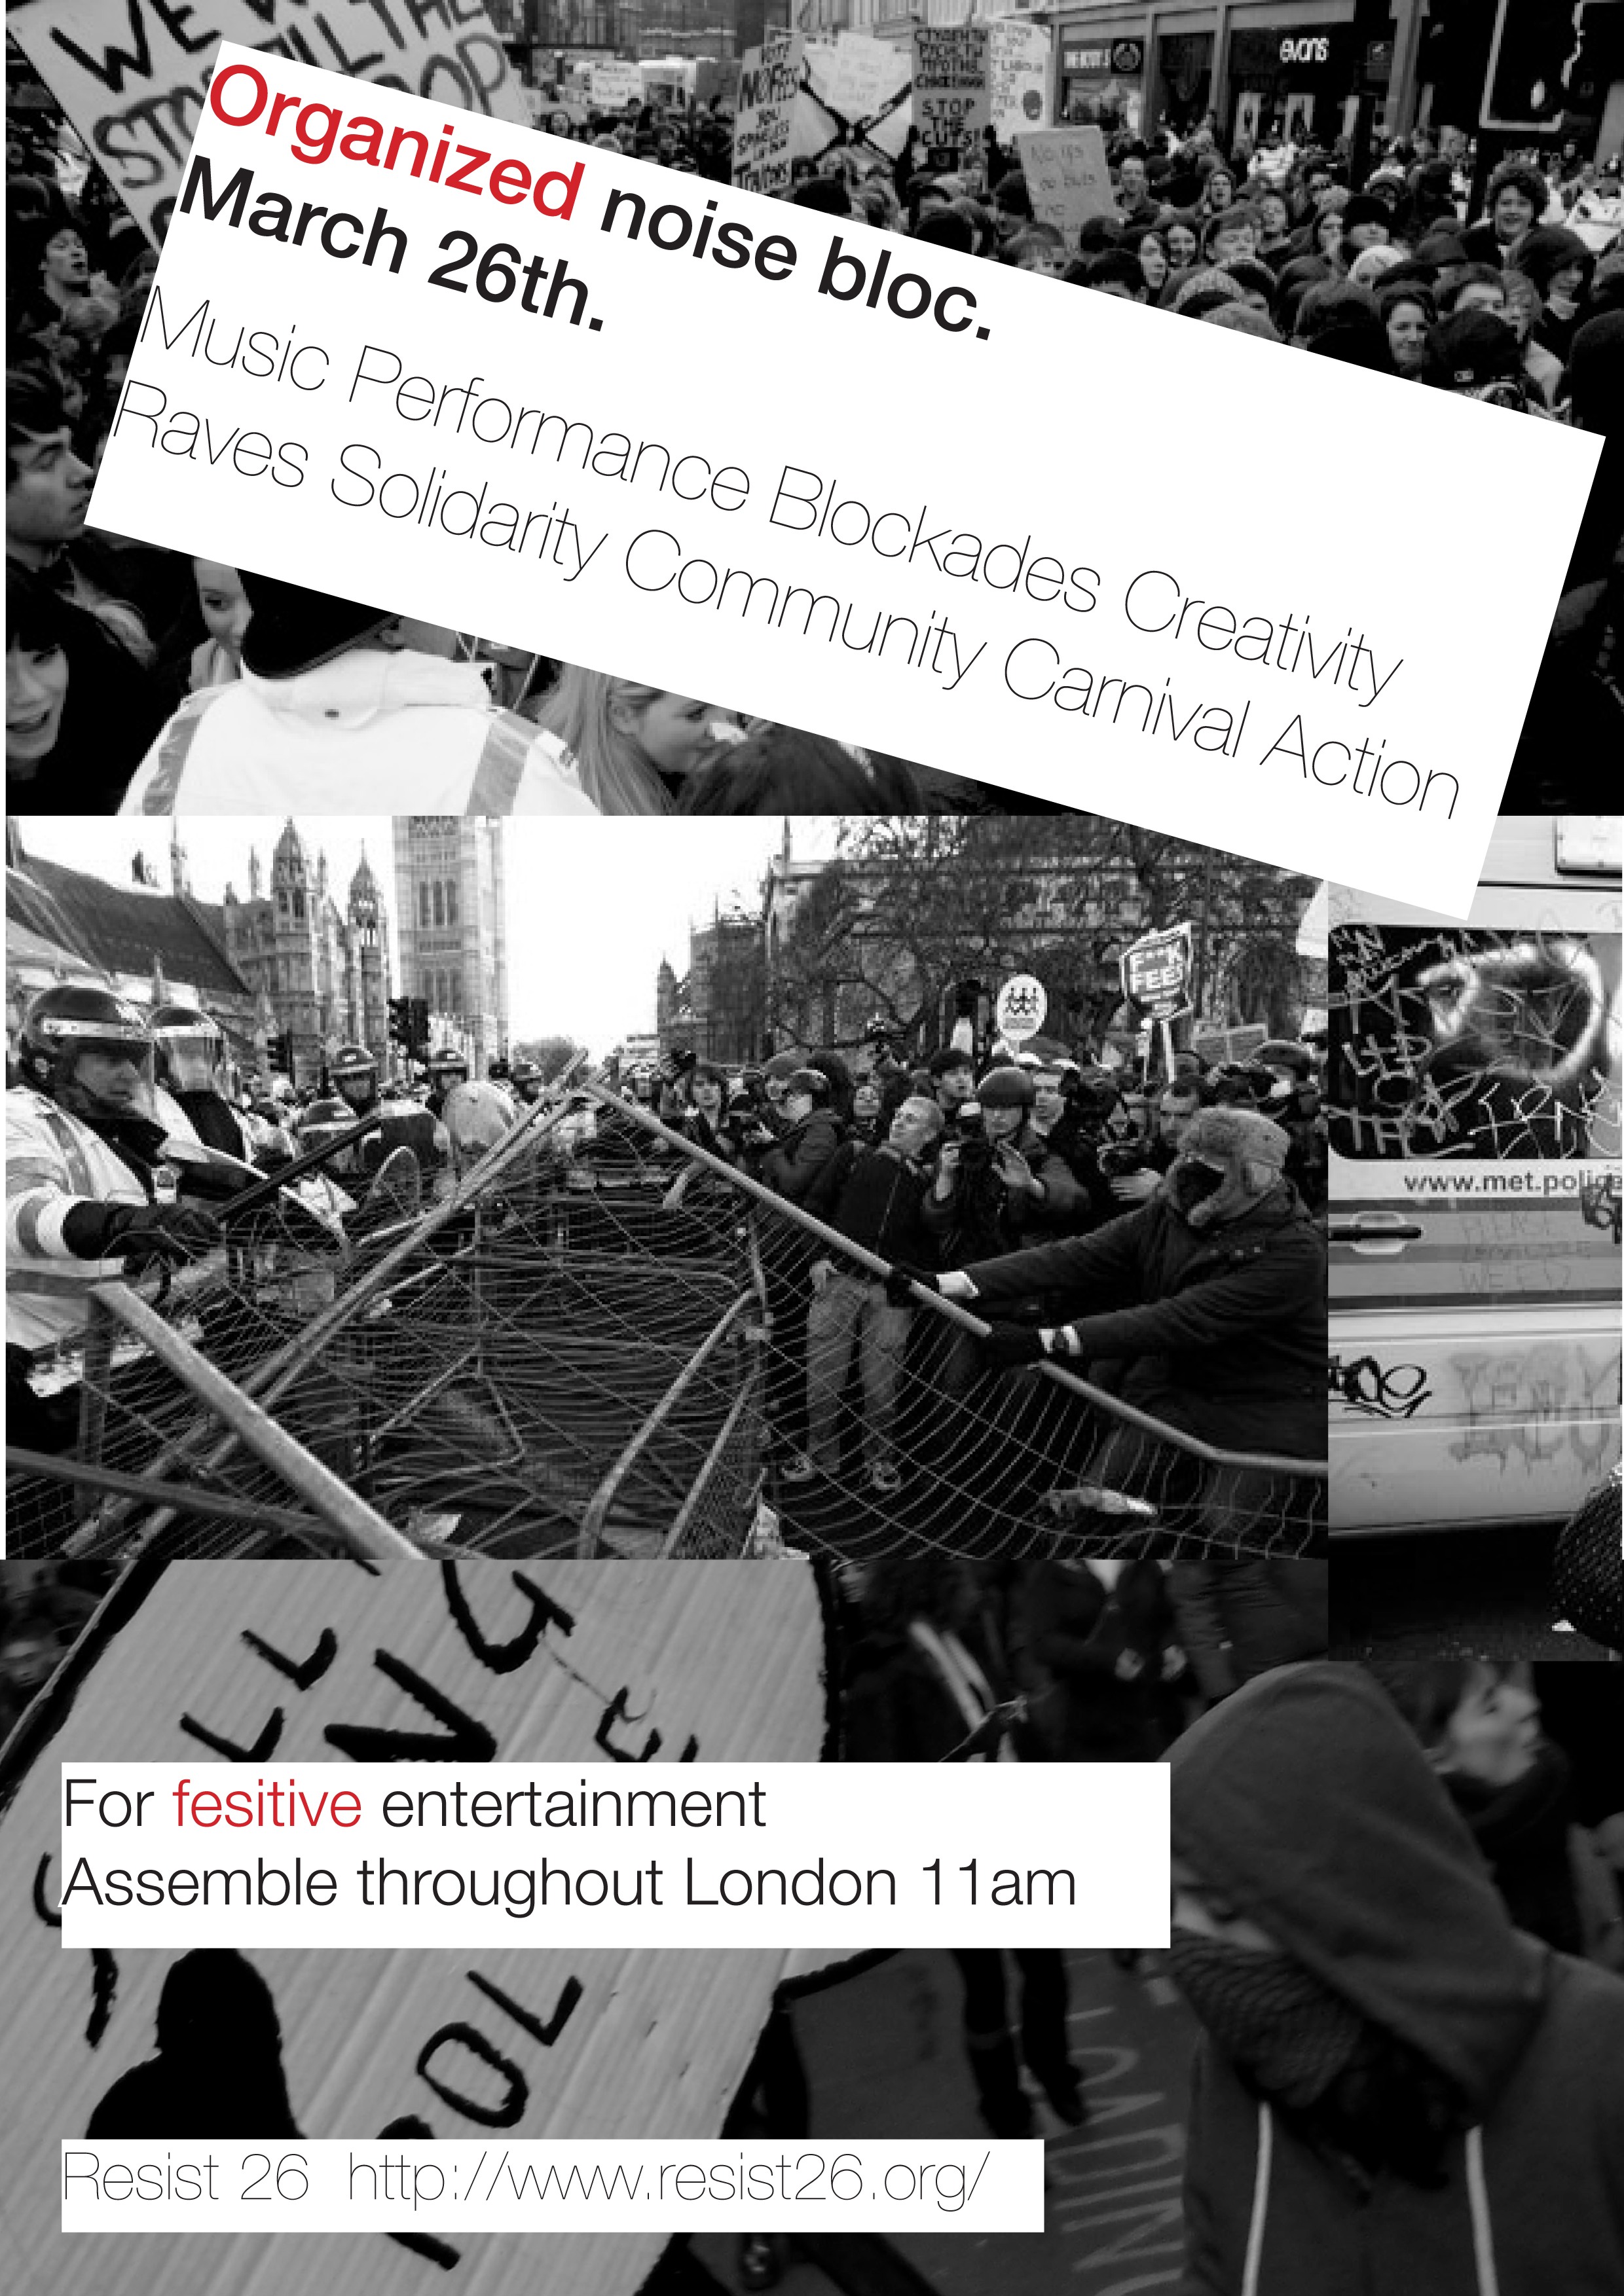 London, UK] Organised noise bloc(s), 26th march, London 11am